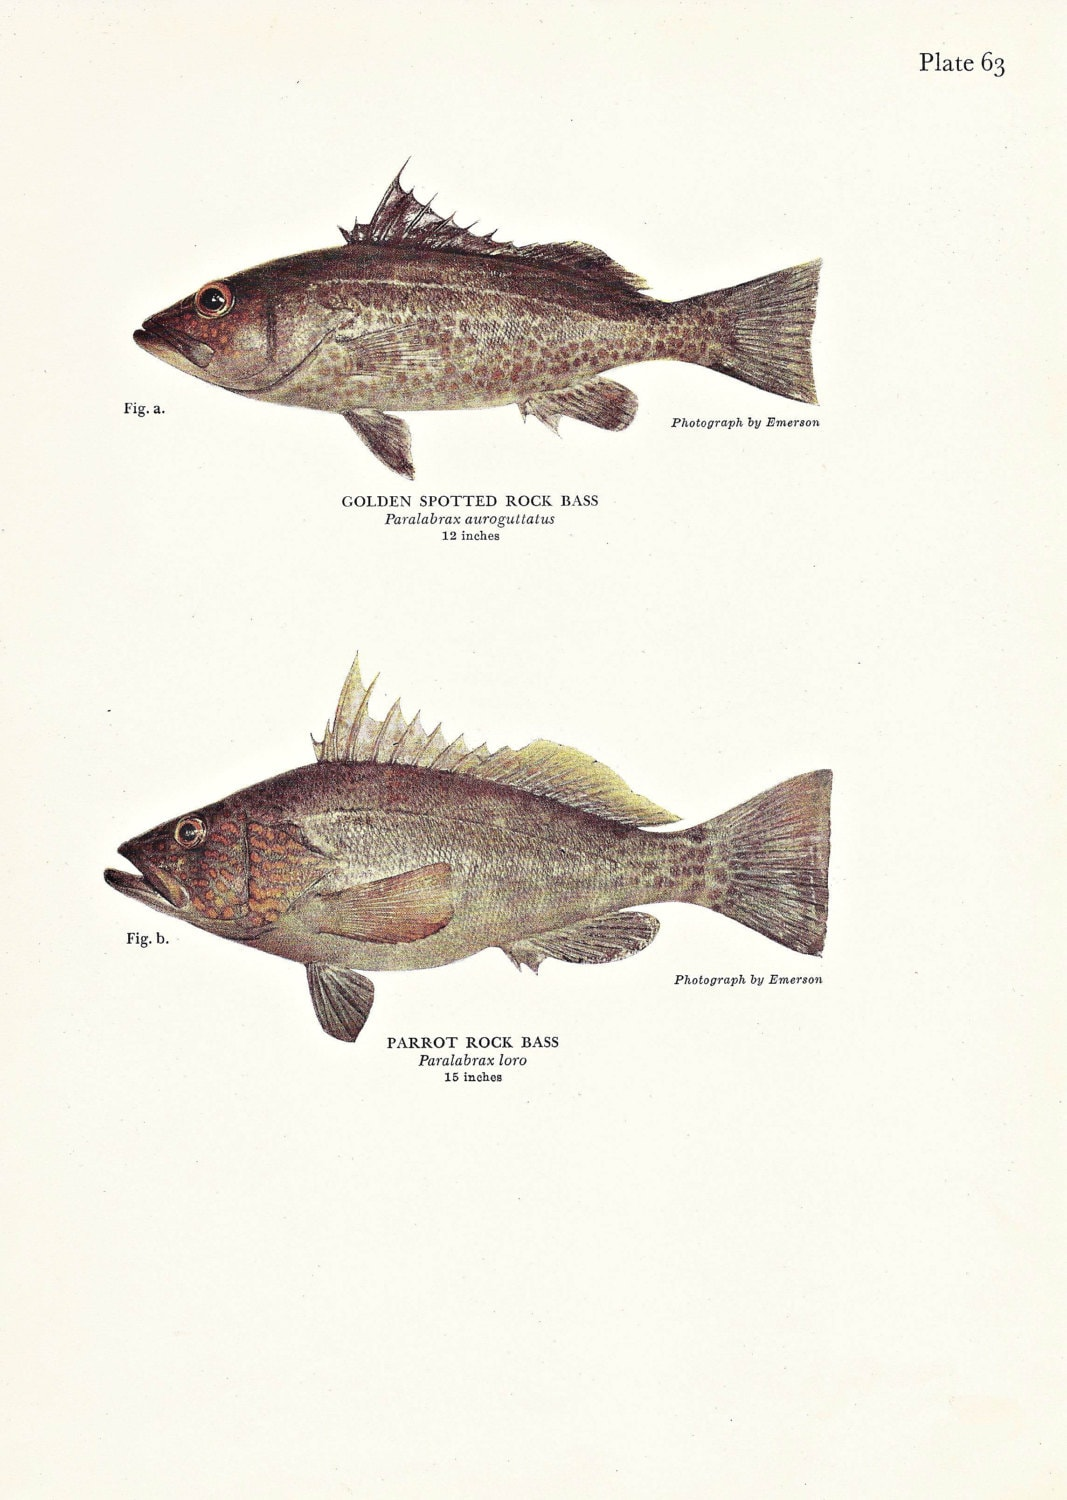 Fish print bass beach decor fishing masculine home decor for Your inner fish sparknotes